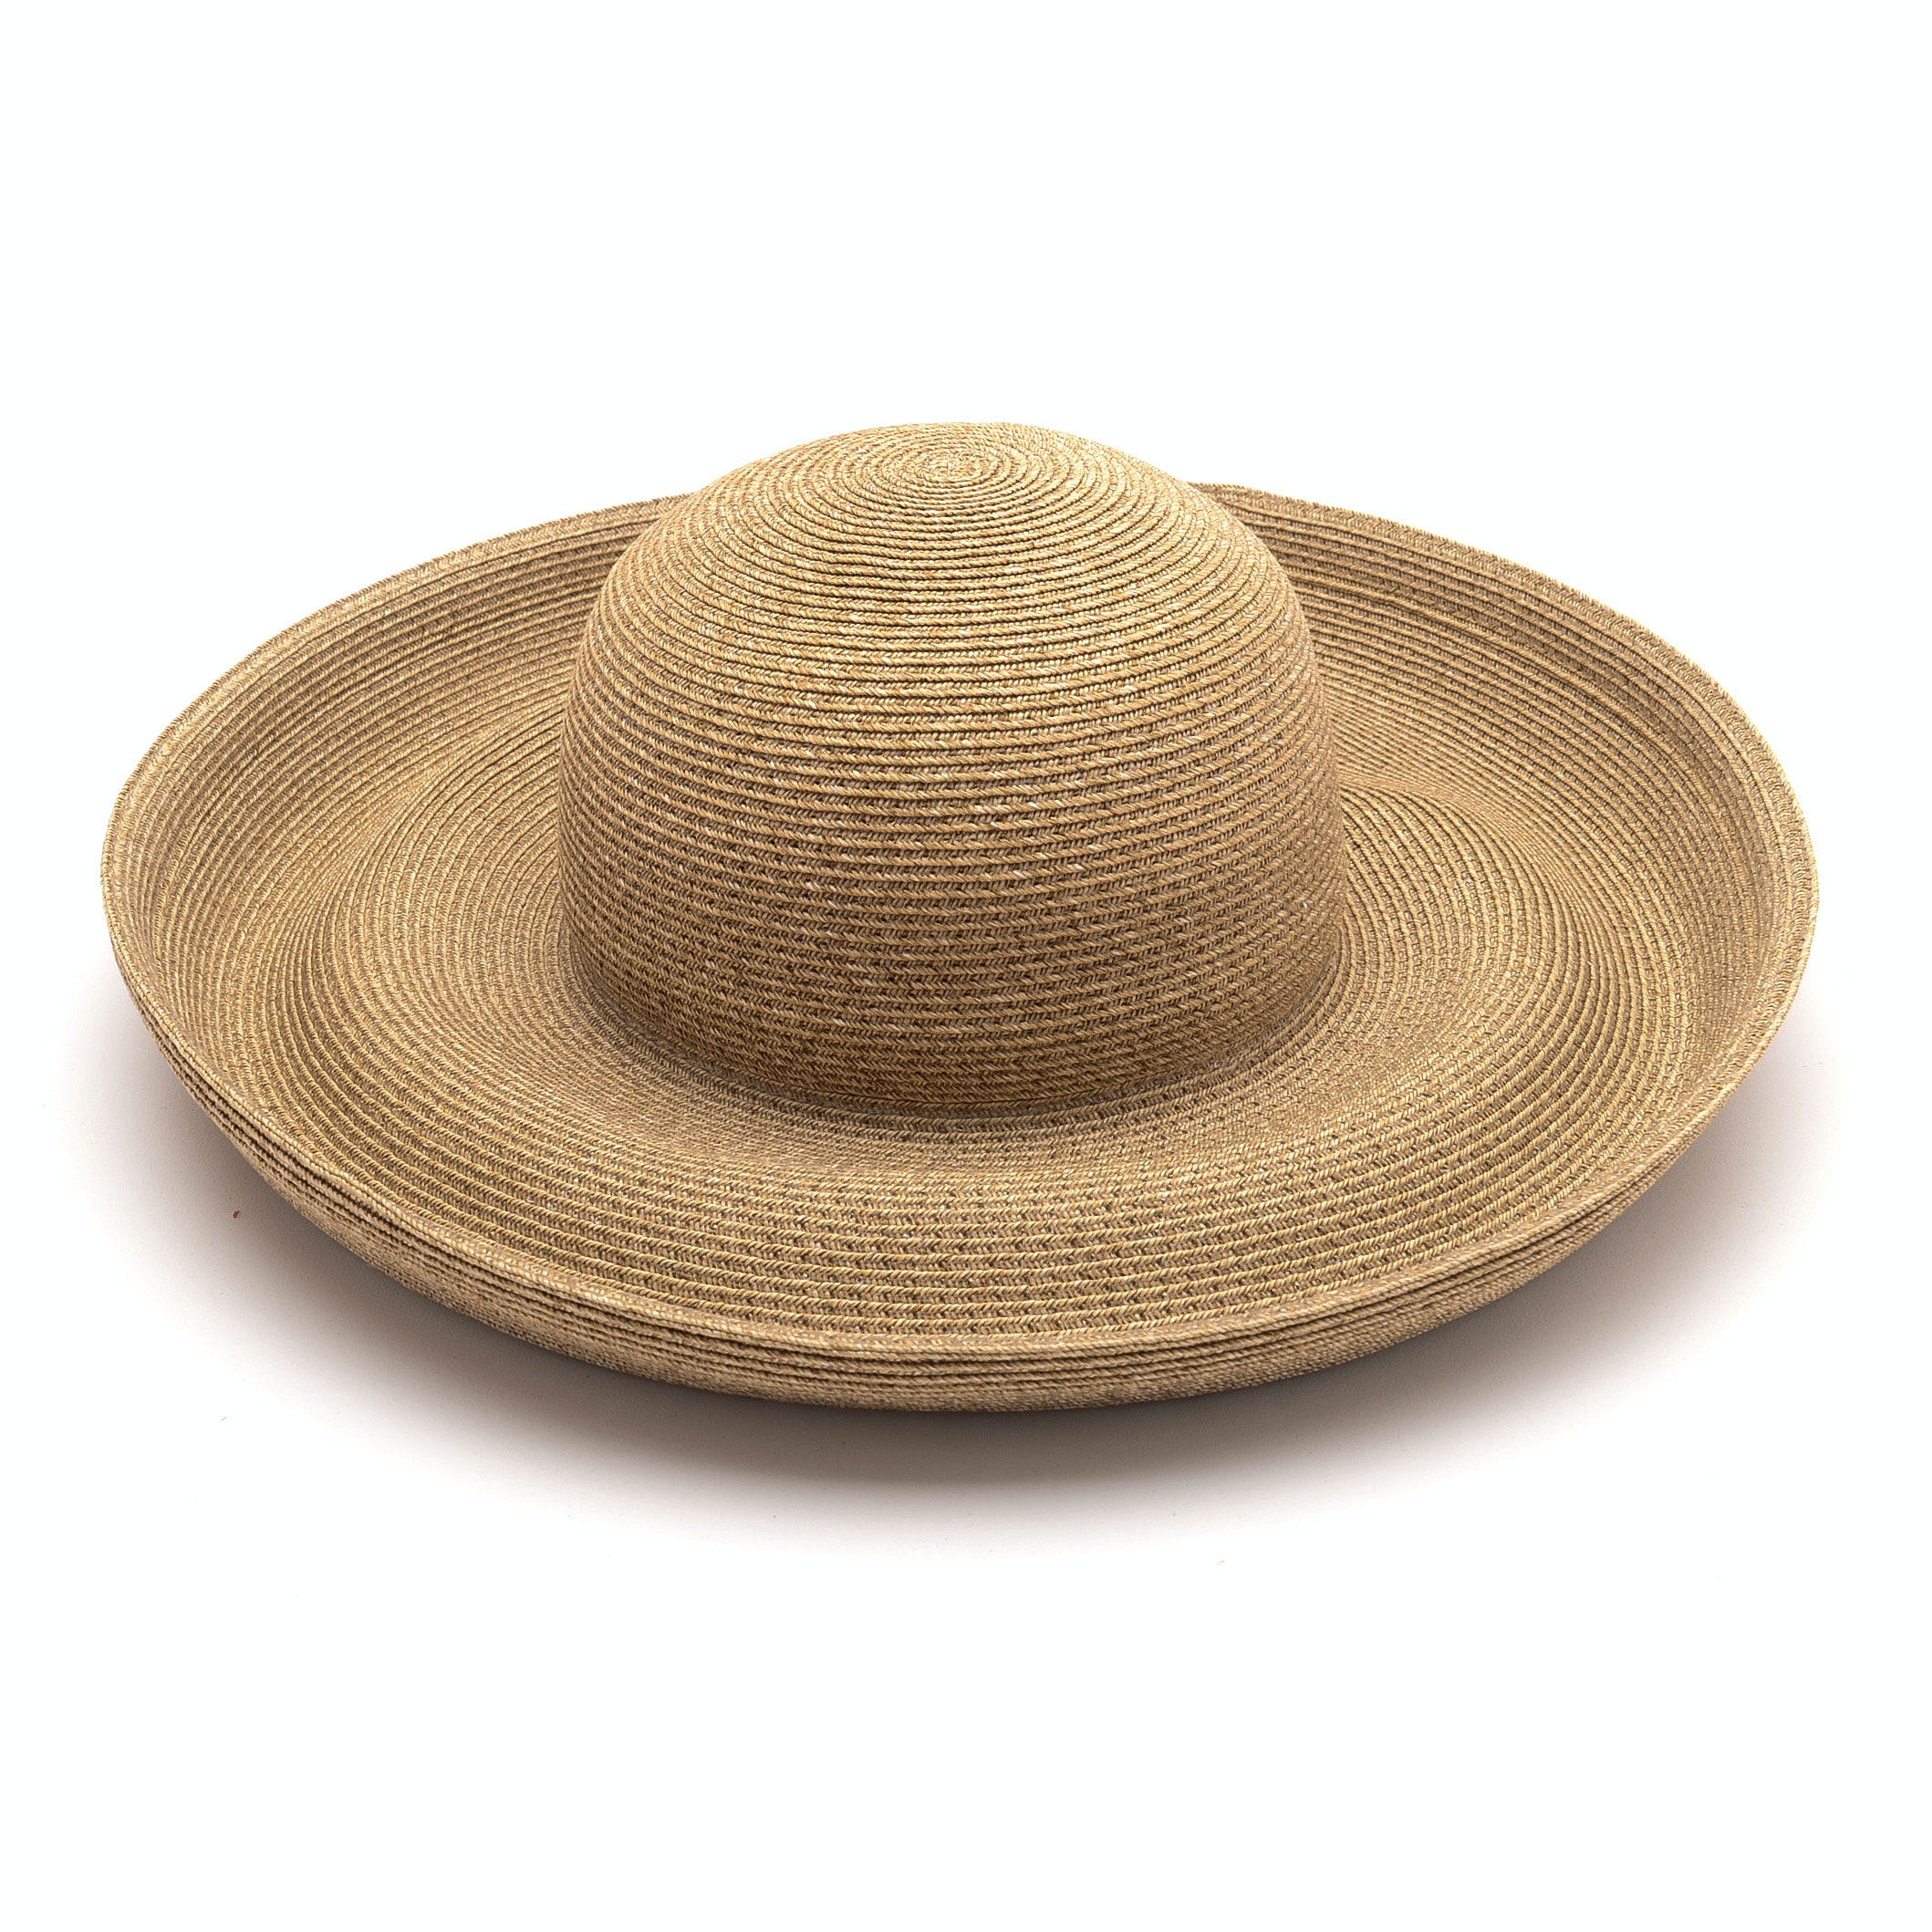 Eric Javits of New York Natural Straw Hat with Upturned Brim